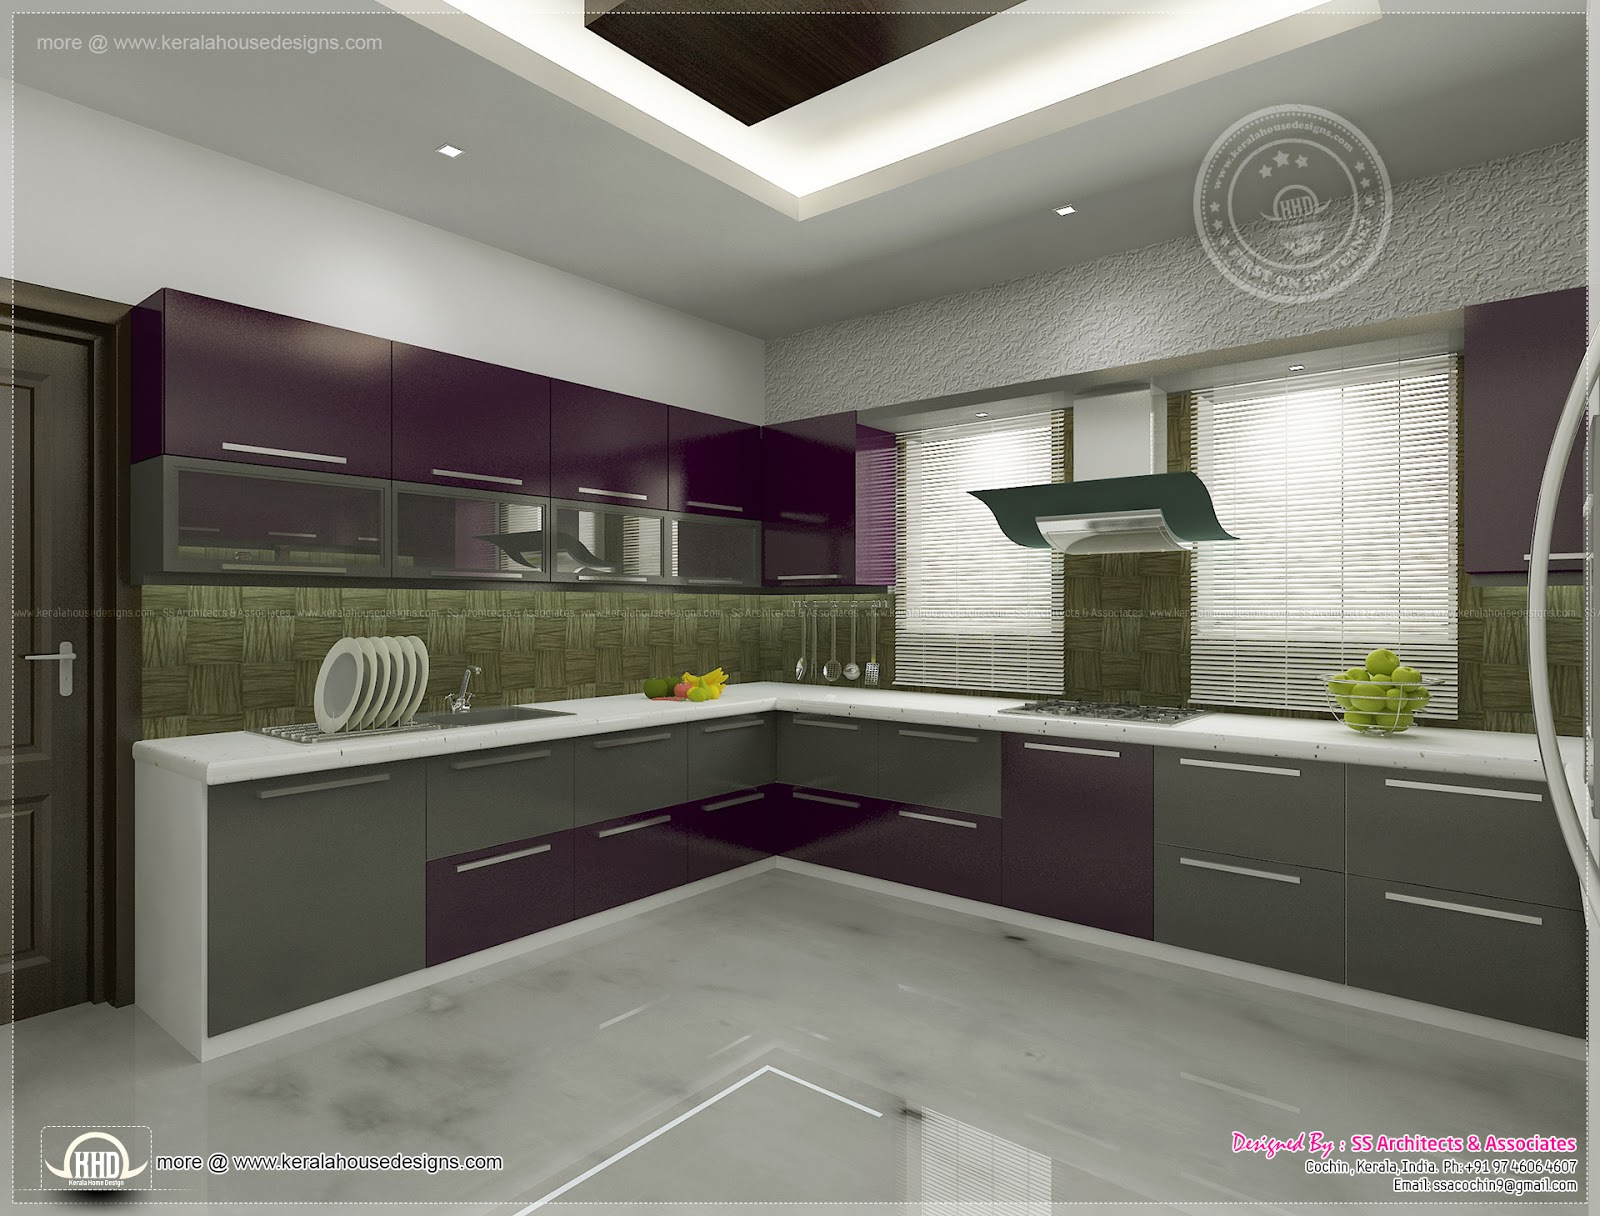 Kitchen interior views by ss architects cochin kerala home design and floor plans - Interior design kitchen ...